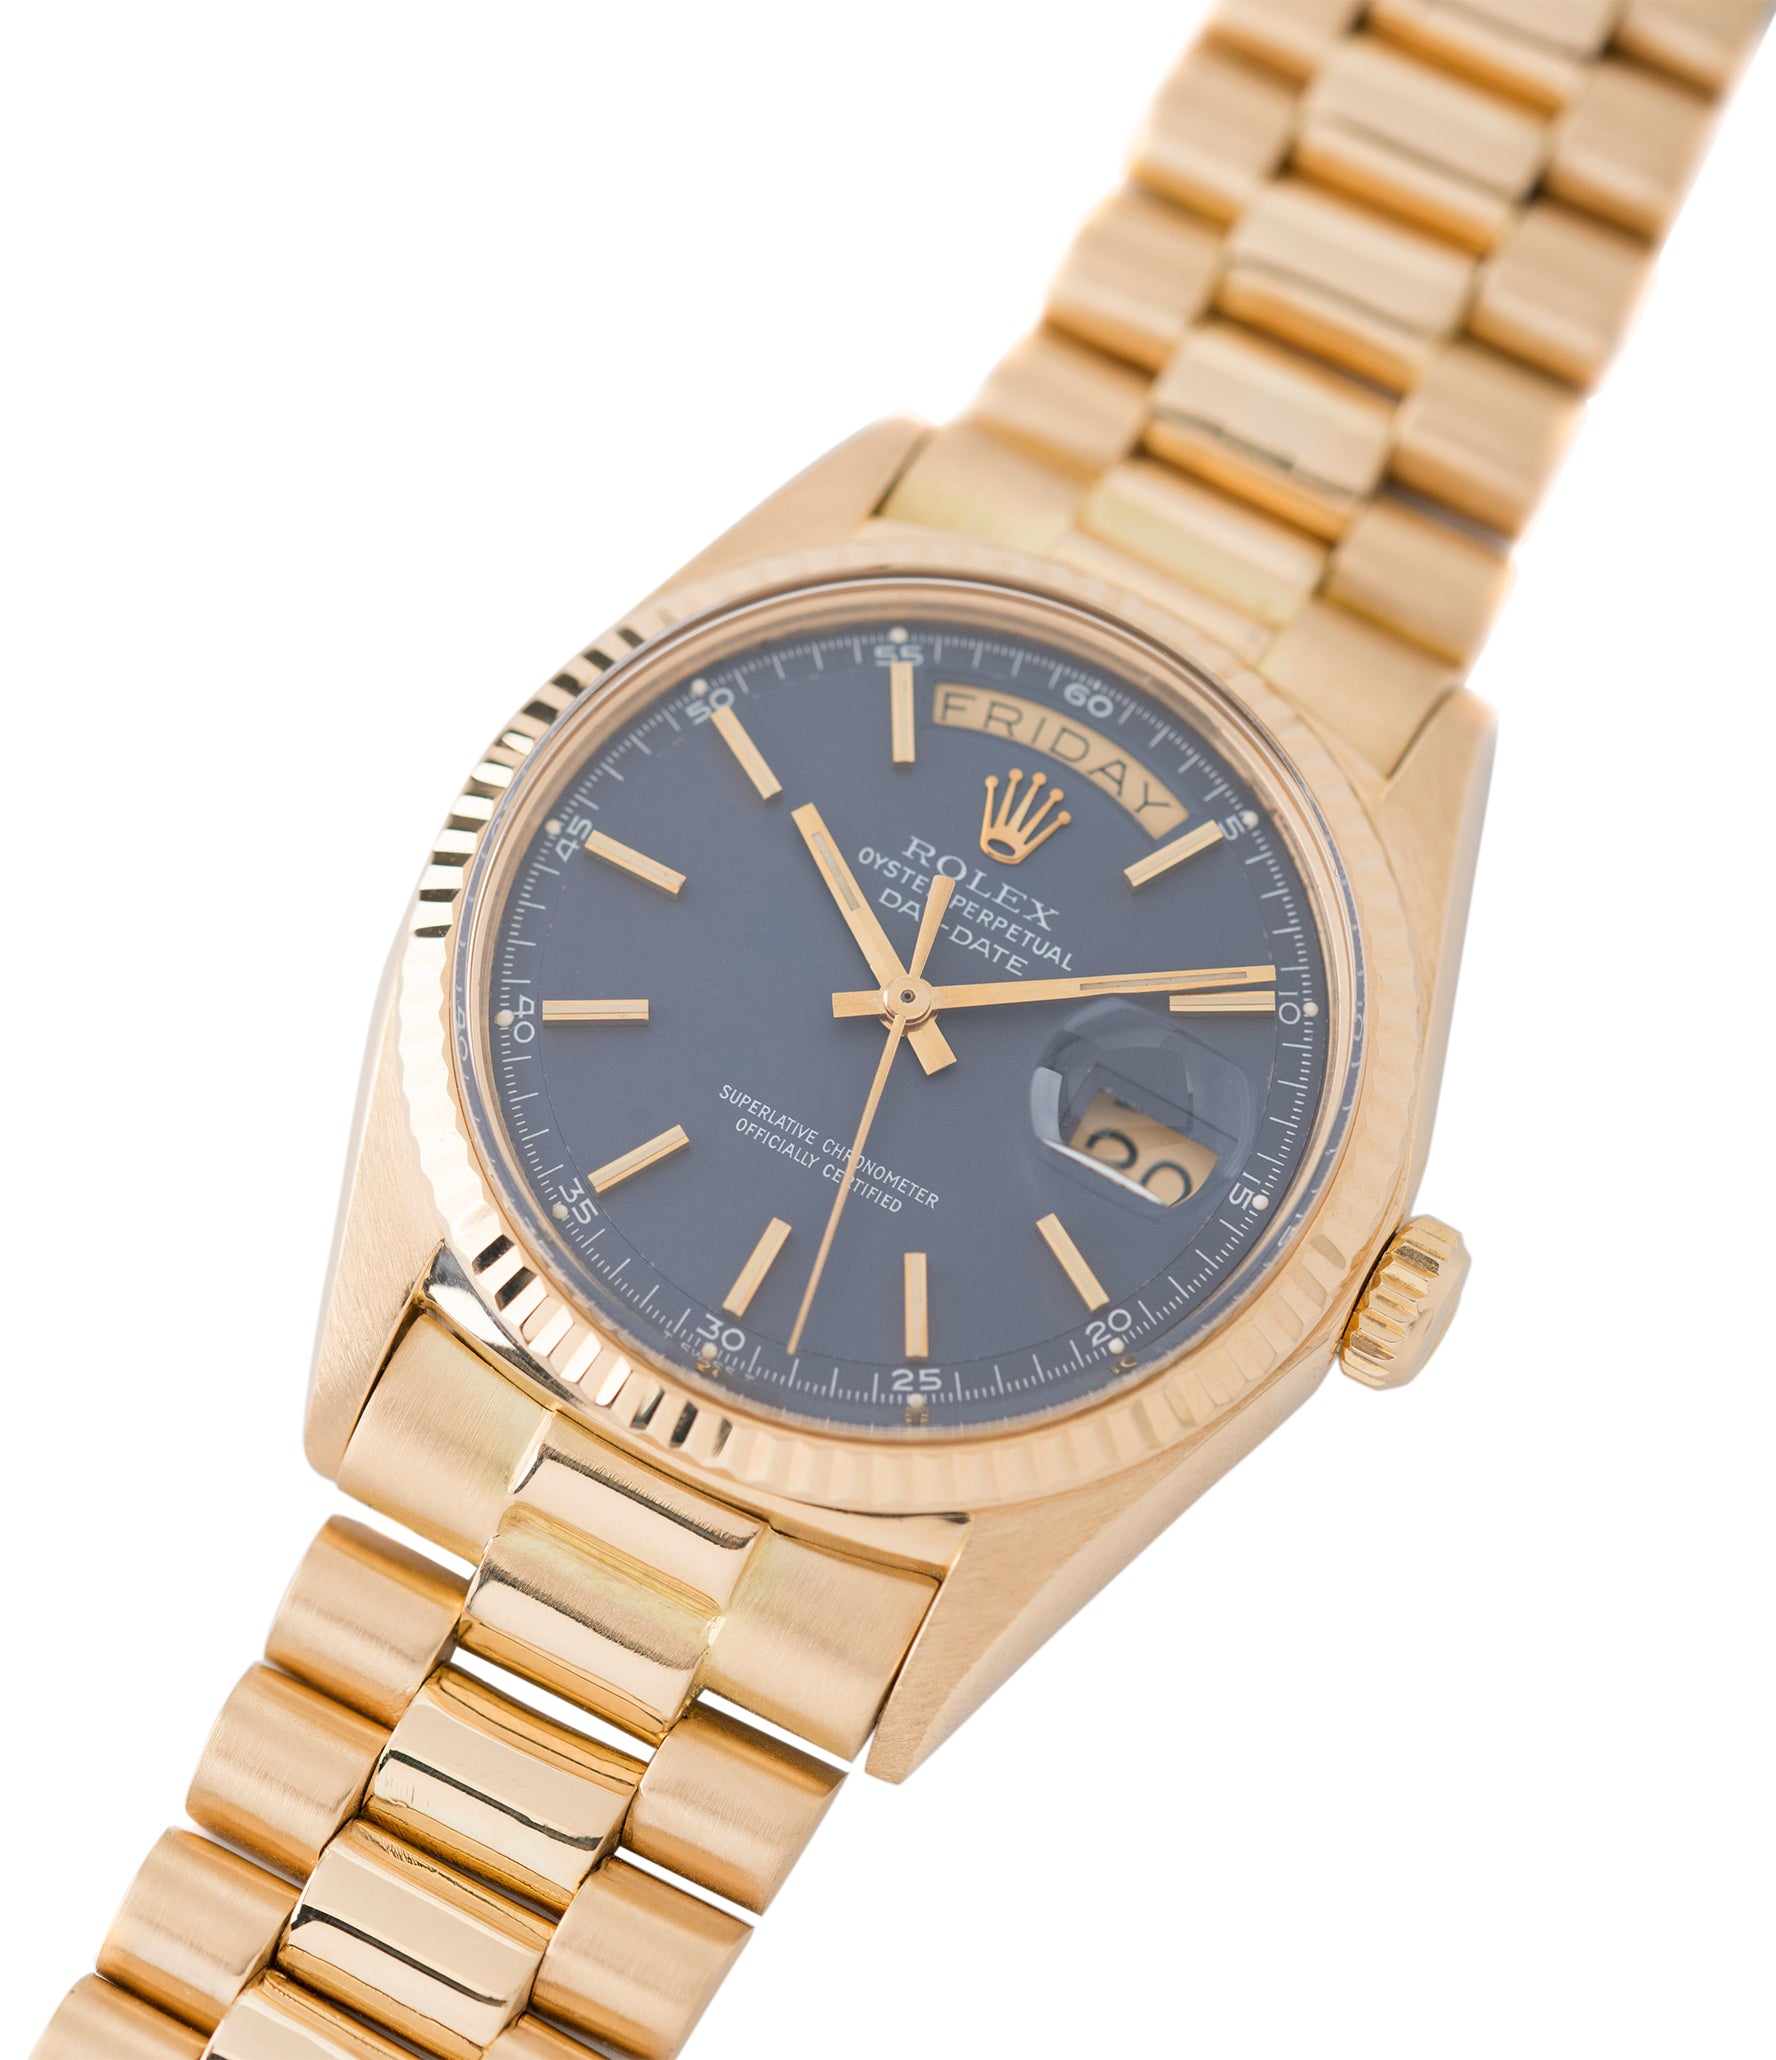 Rolex Day-Date 1803 Oyster Perpetual Cal. 1556 blue dial gold watch for sale online at A Collected Man London UK specialist of rare watches